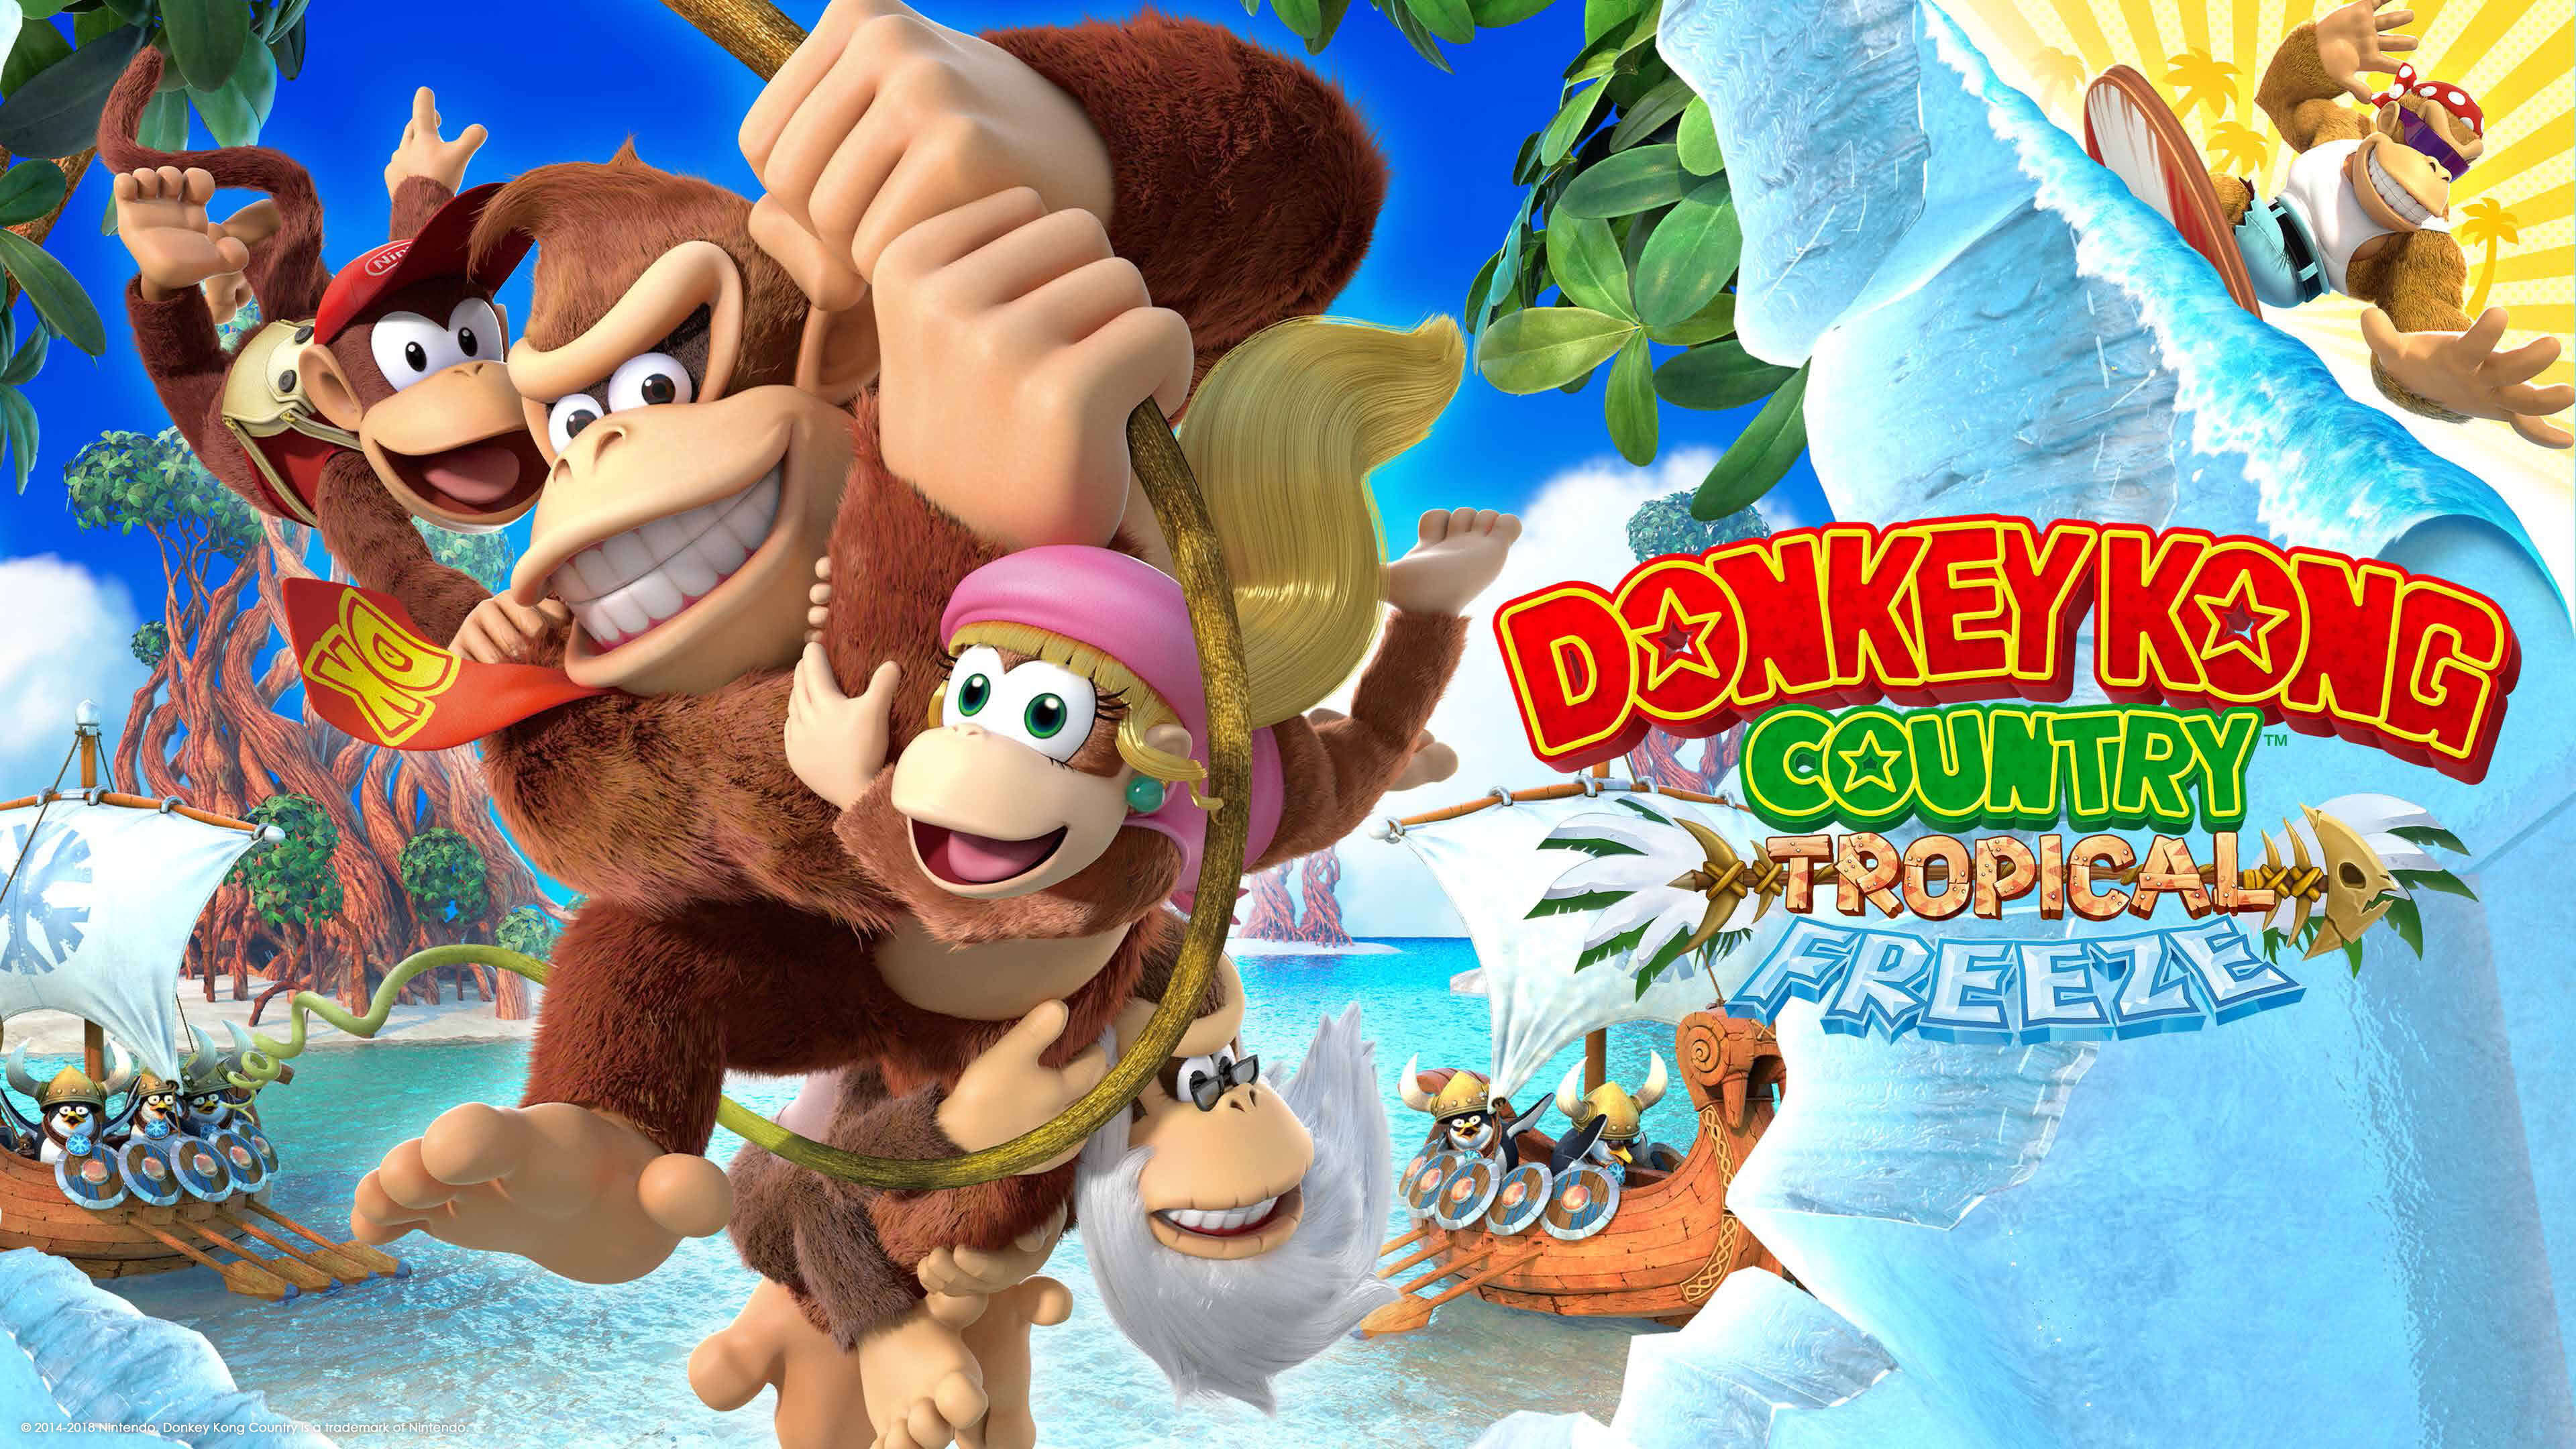 donkey kong country tropical freeze uhd 4k wallpaper